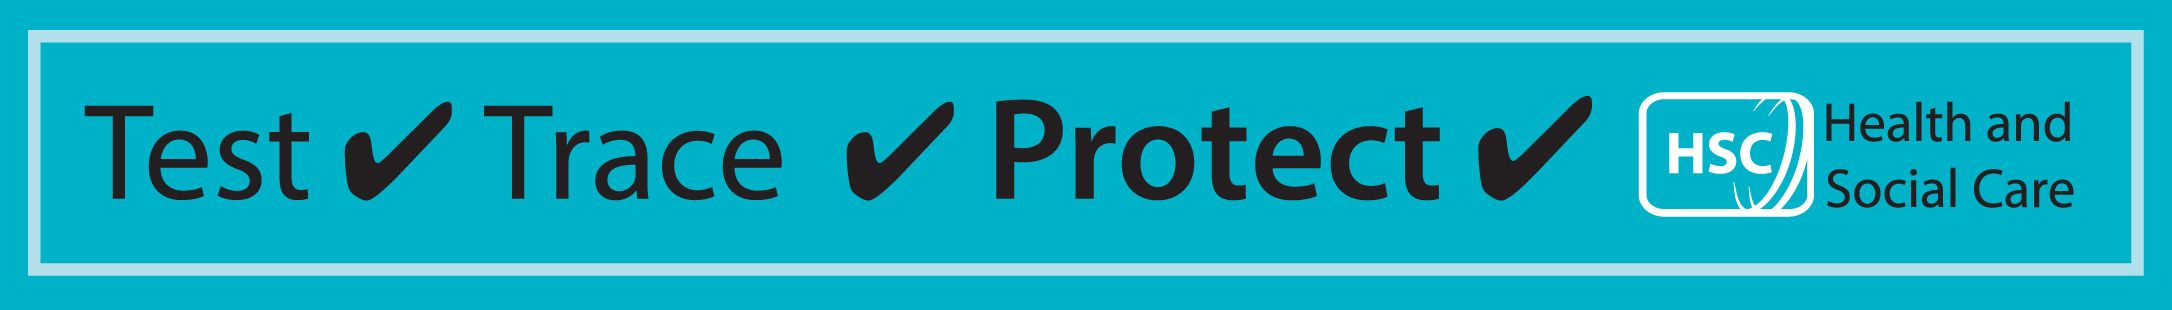 test trace protect logo